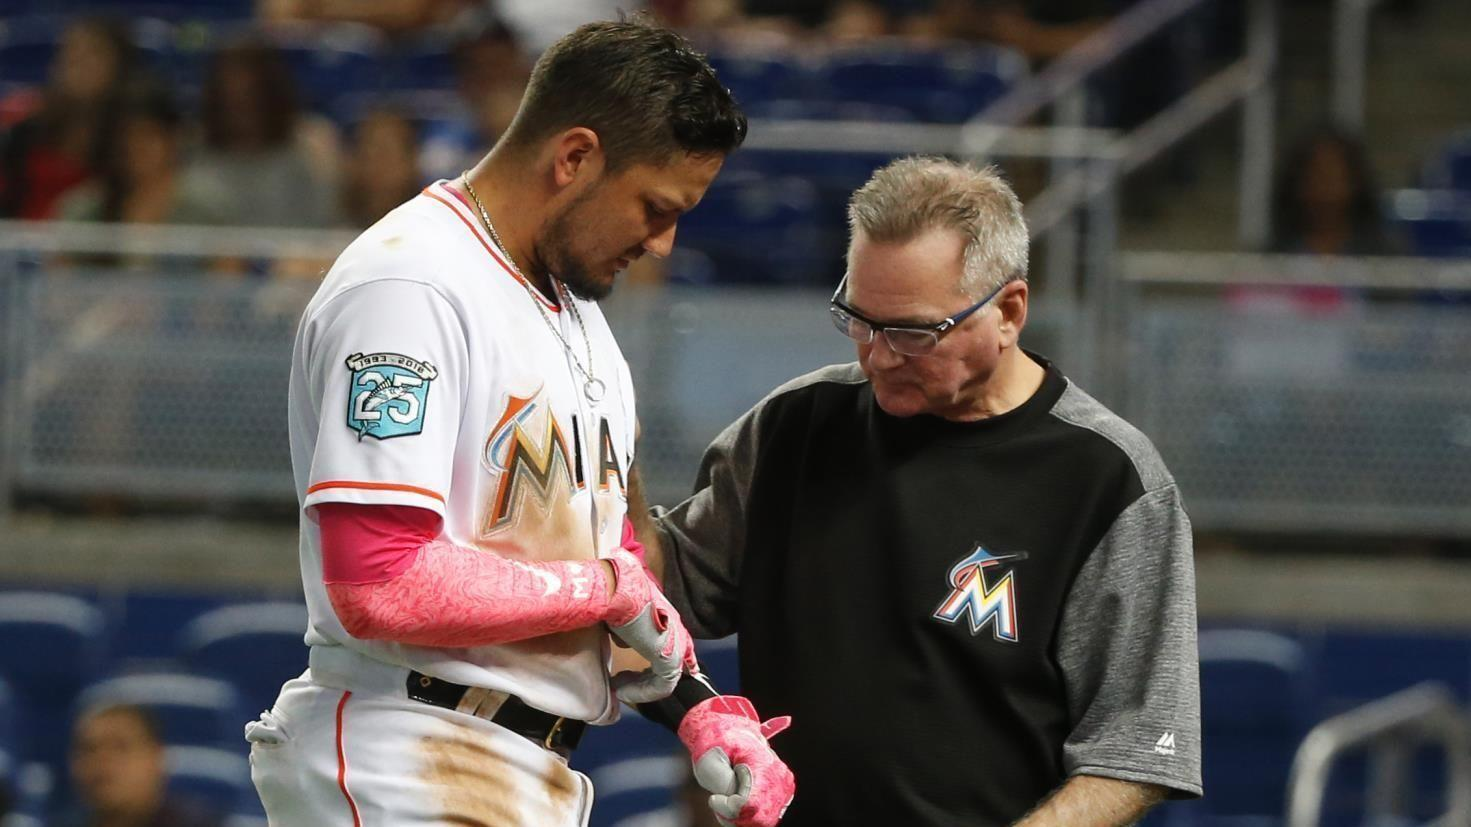 Fl-sp-marlins-notebook-tues-20180515